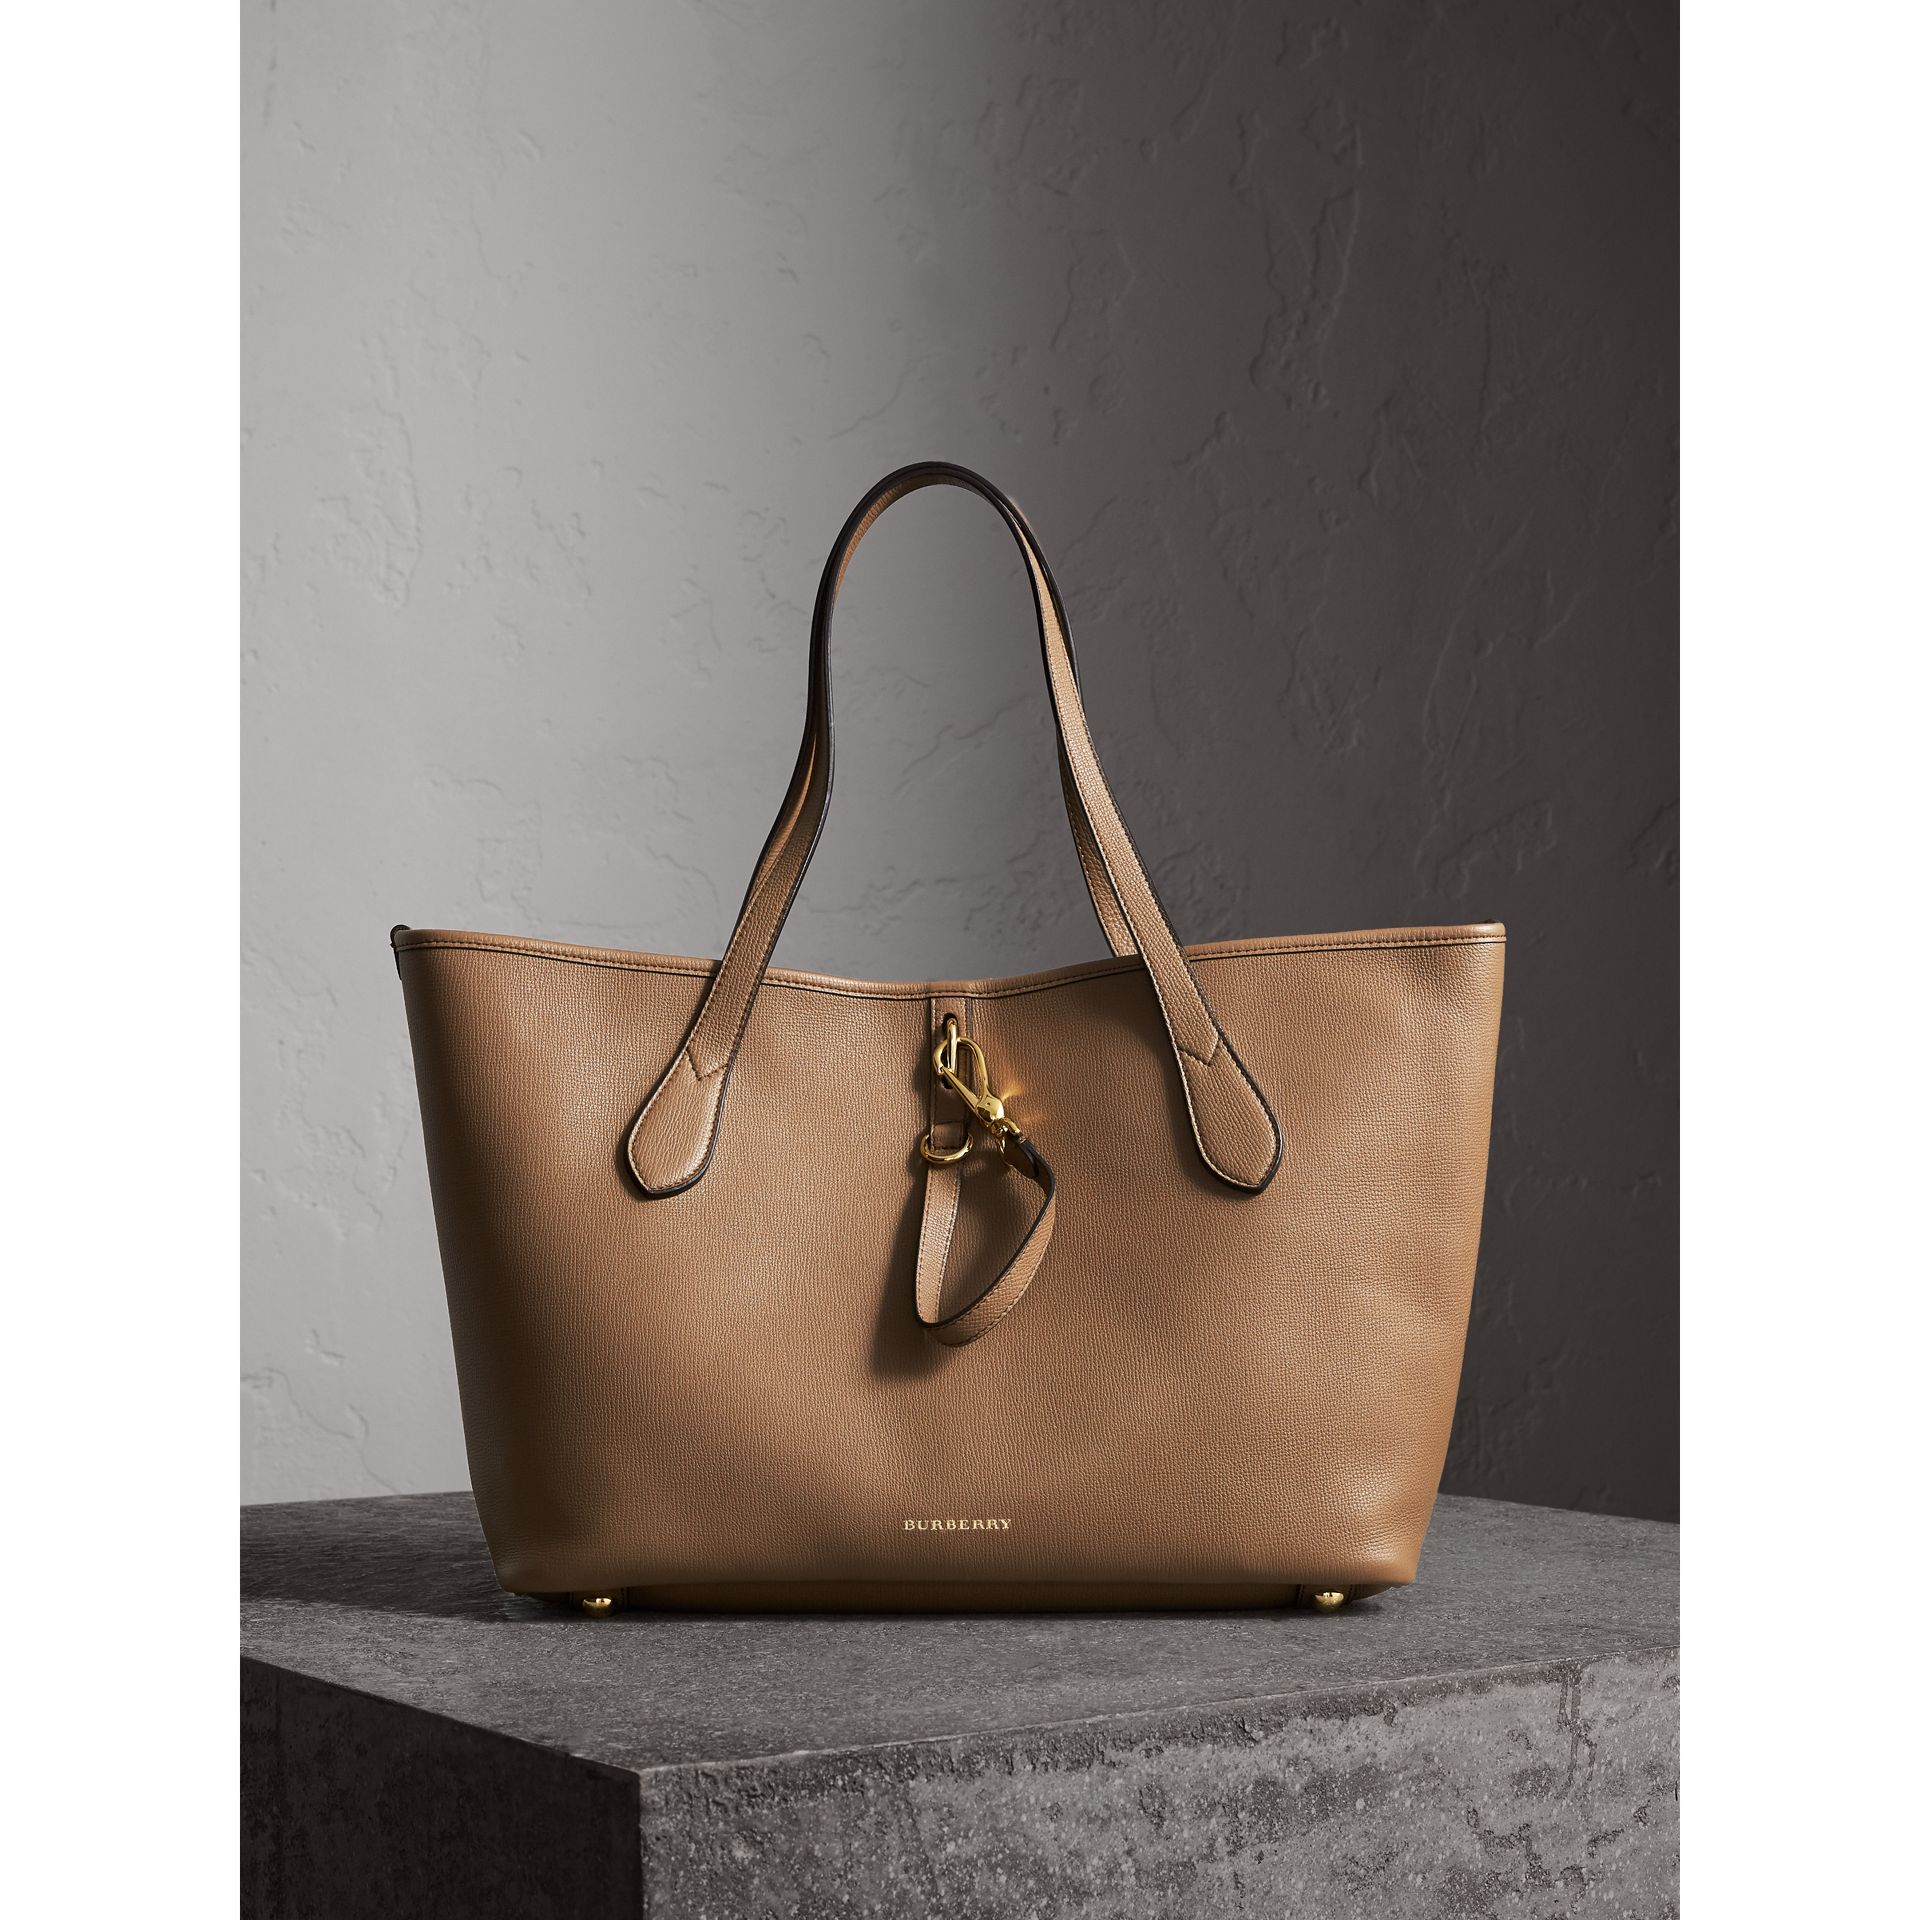 Sac tote medium en cuir grainé (Sable Foncé) - photo de la galerie 1